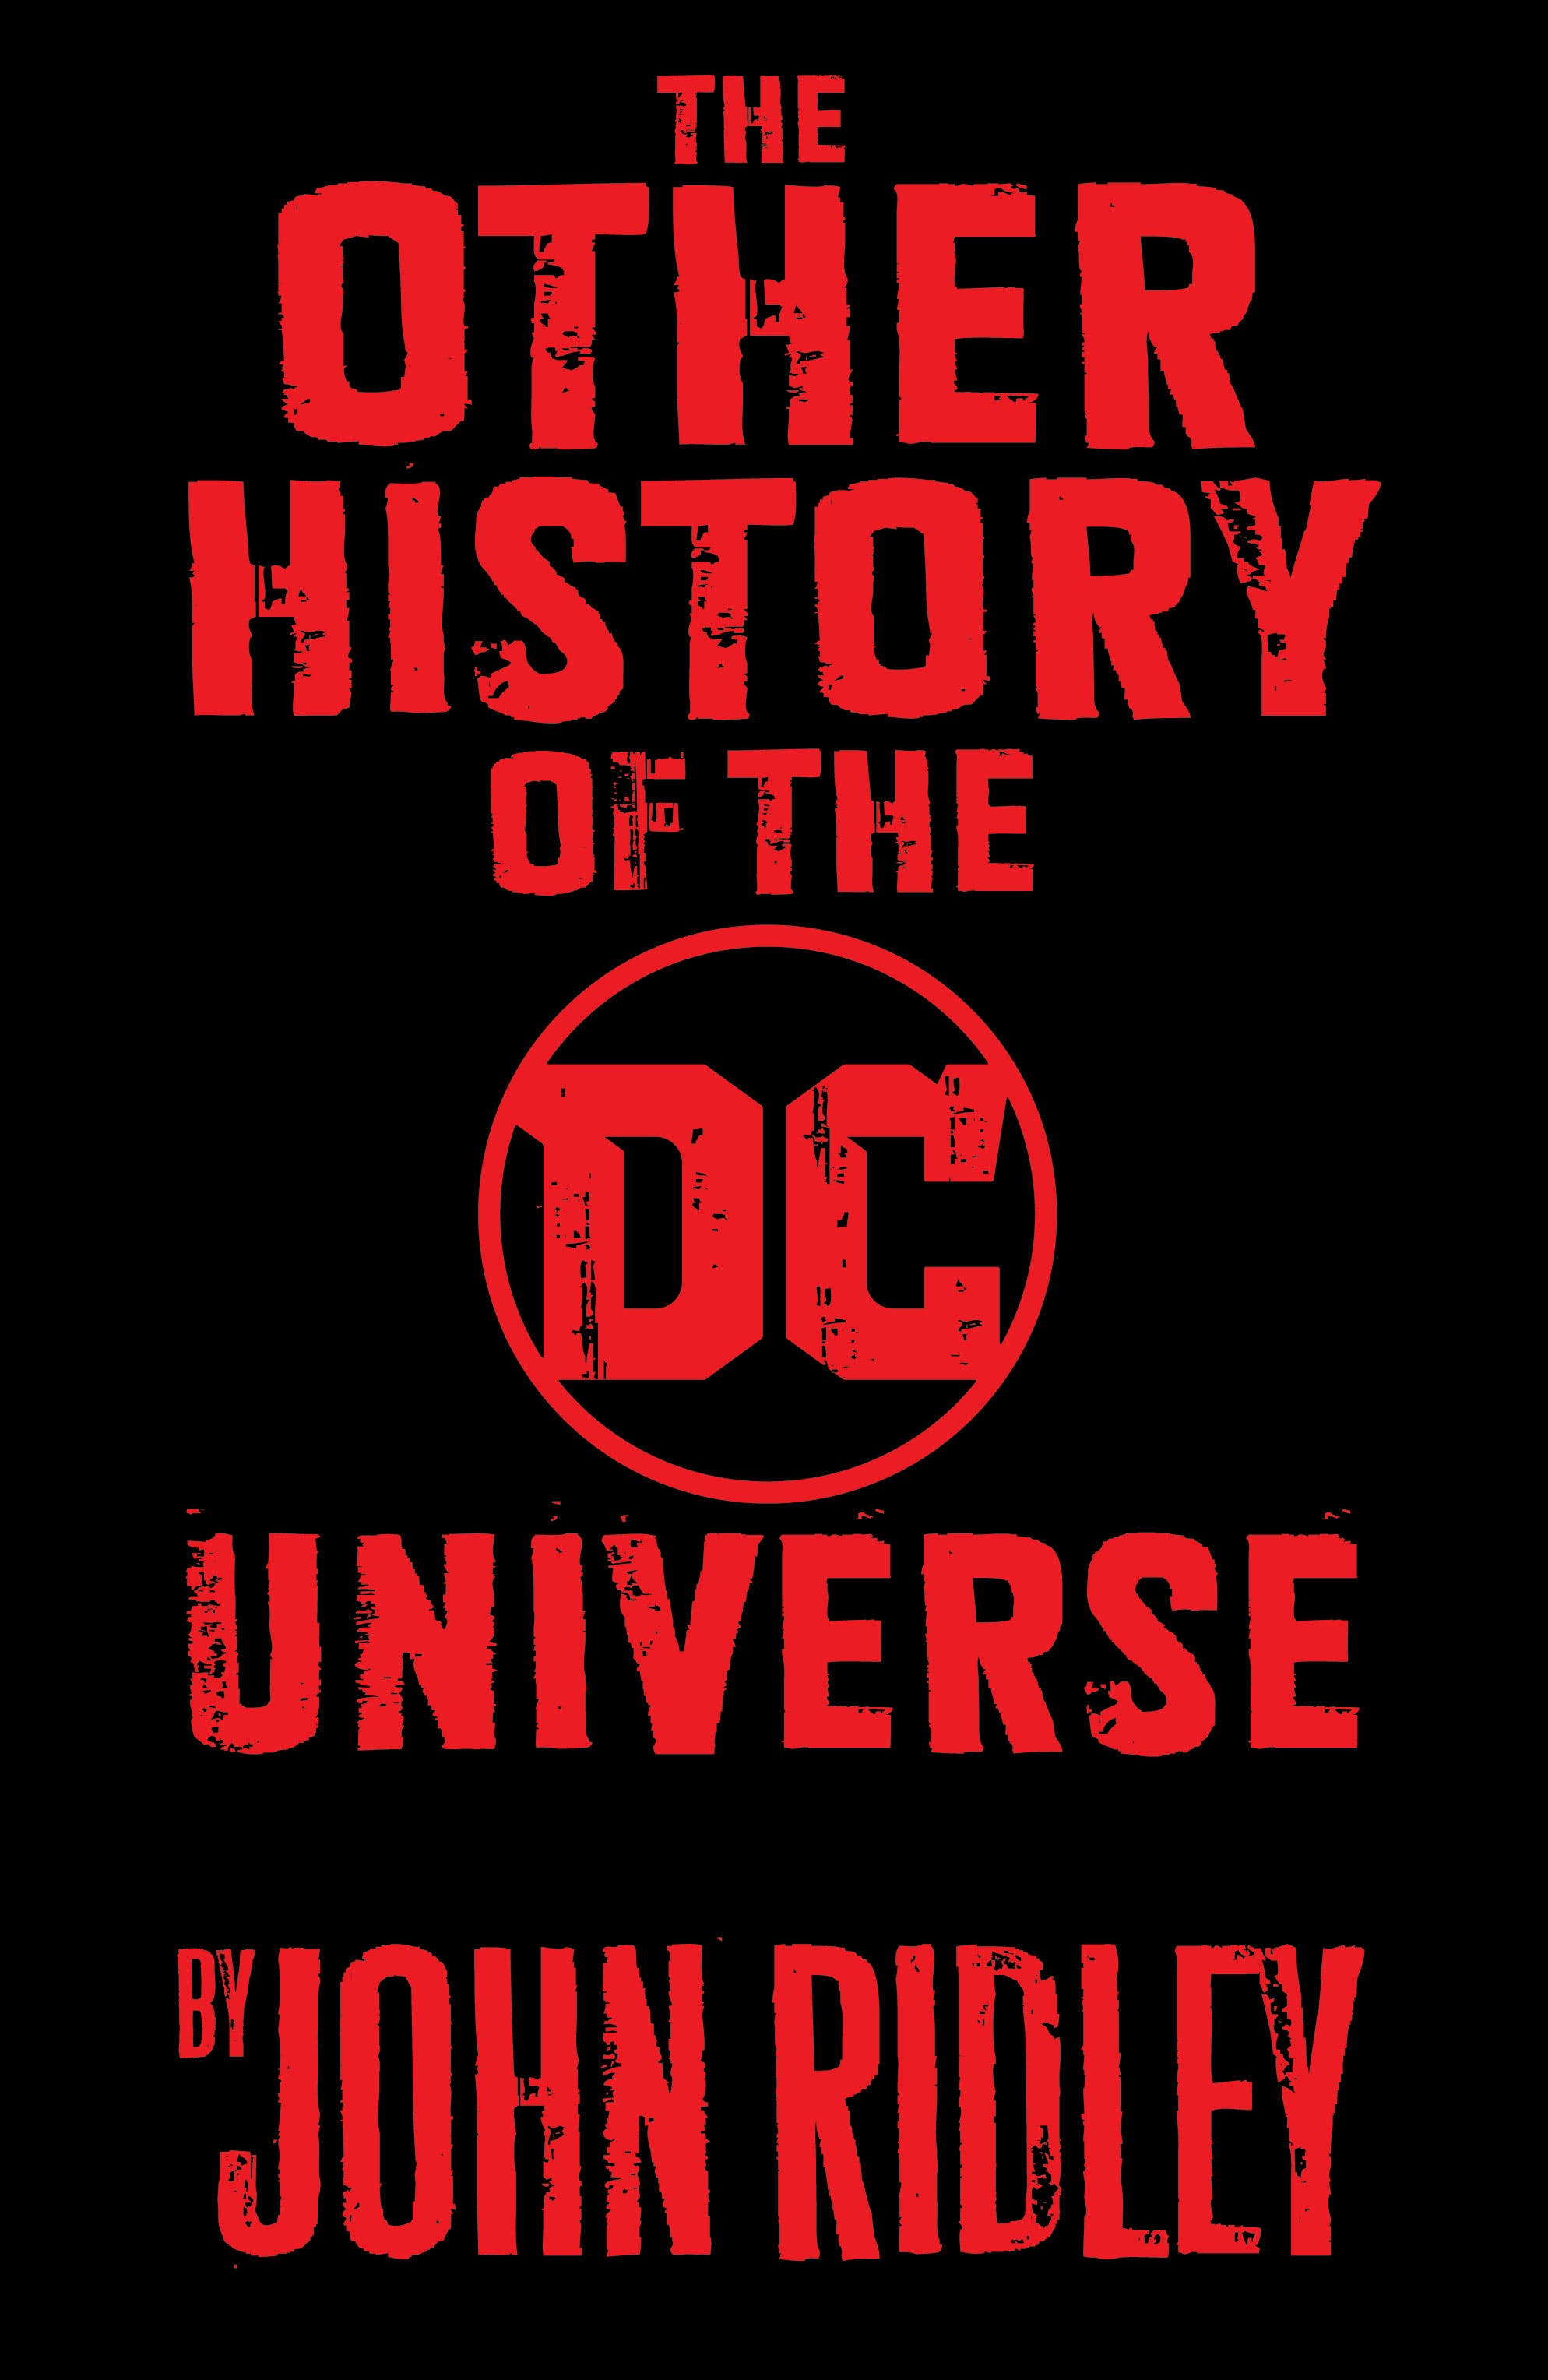 Promo image for The Other History of the DC Universe, DC Comics 2018.